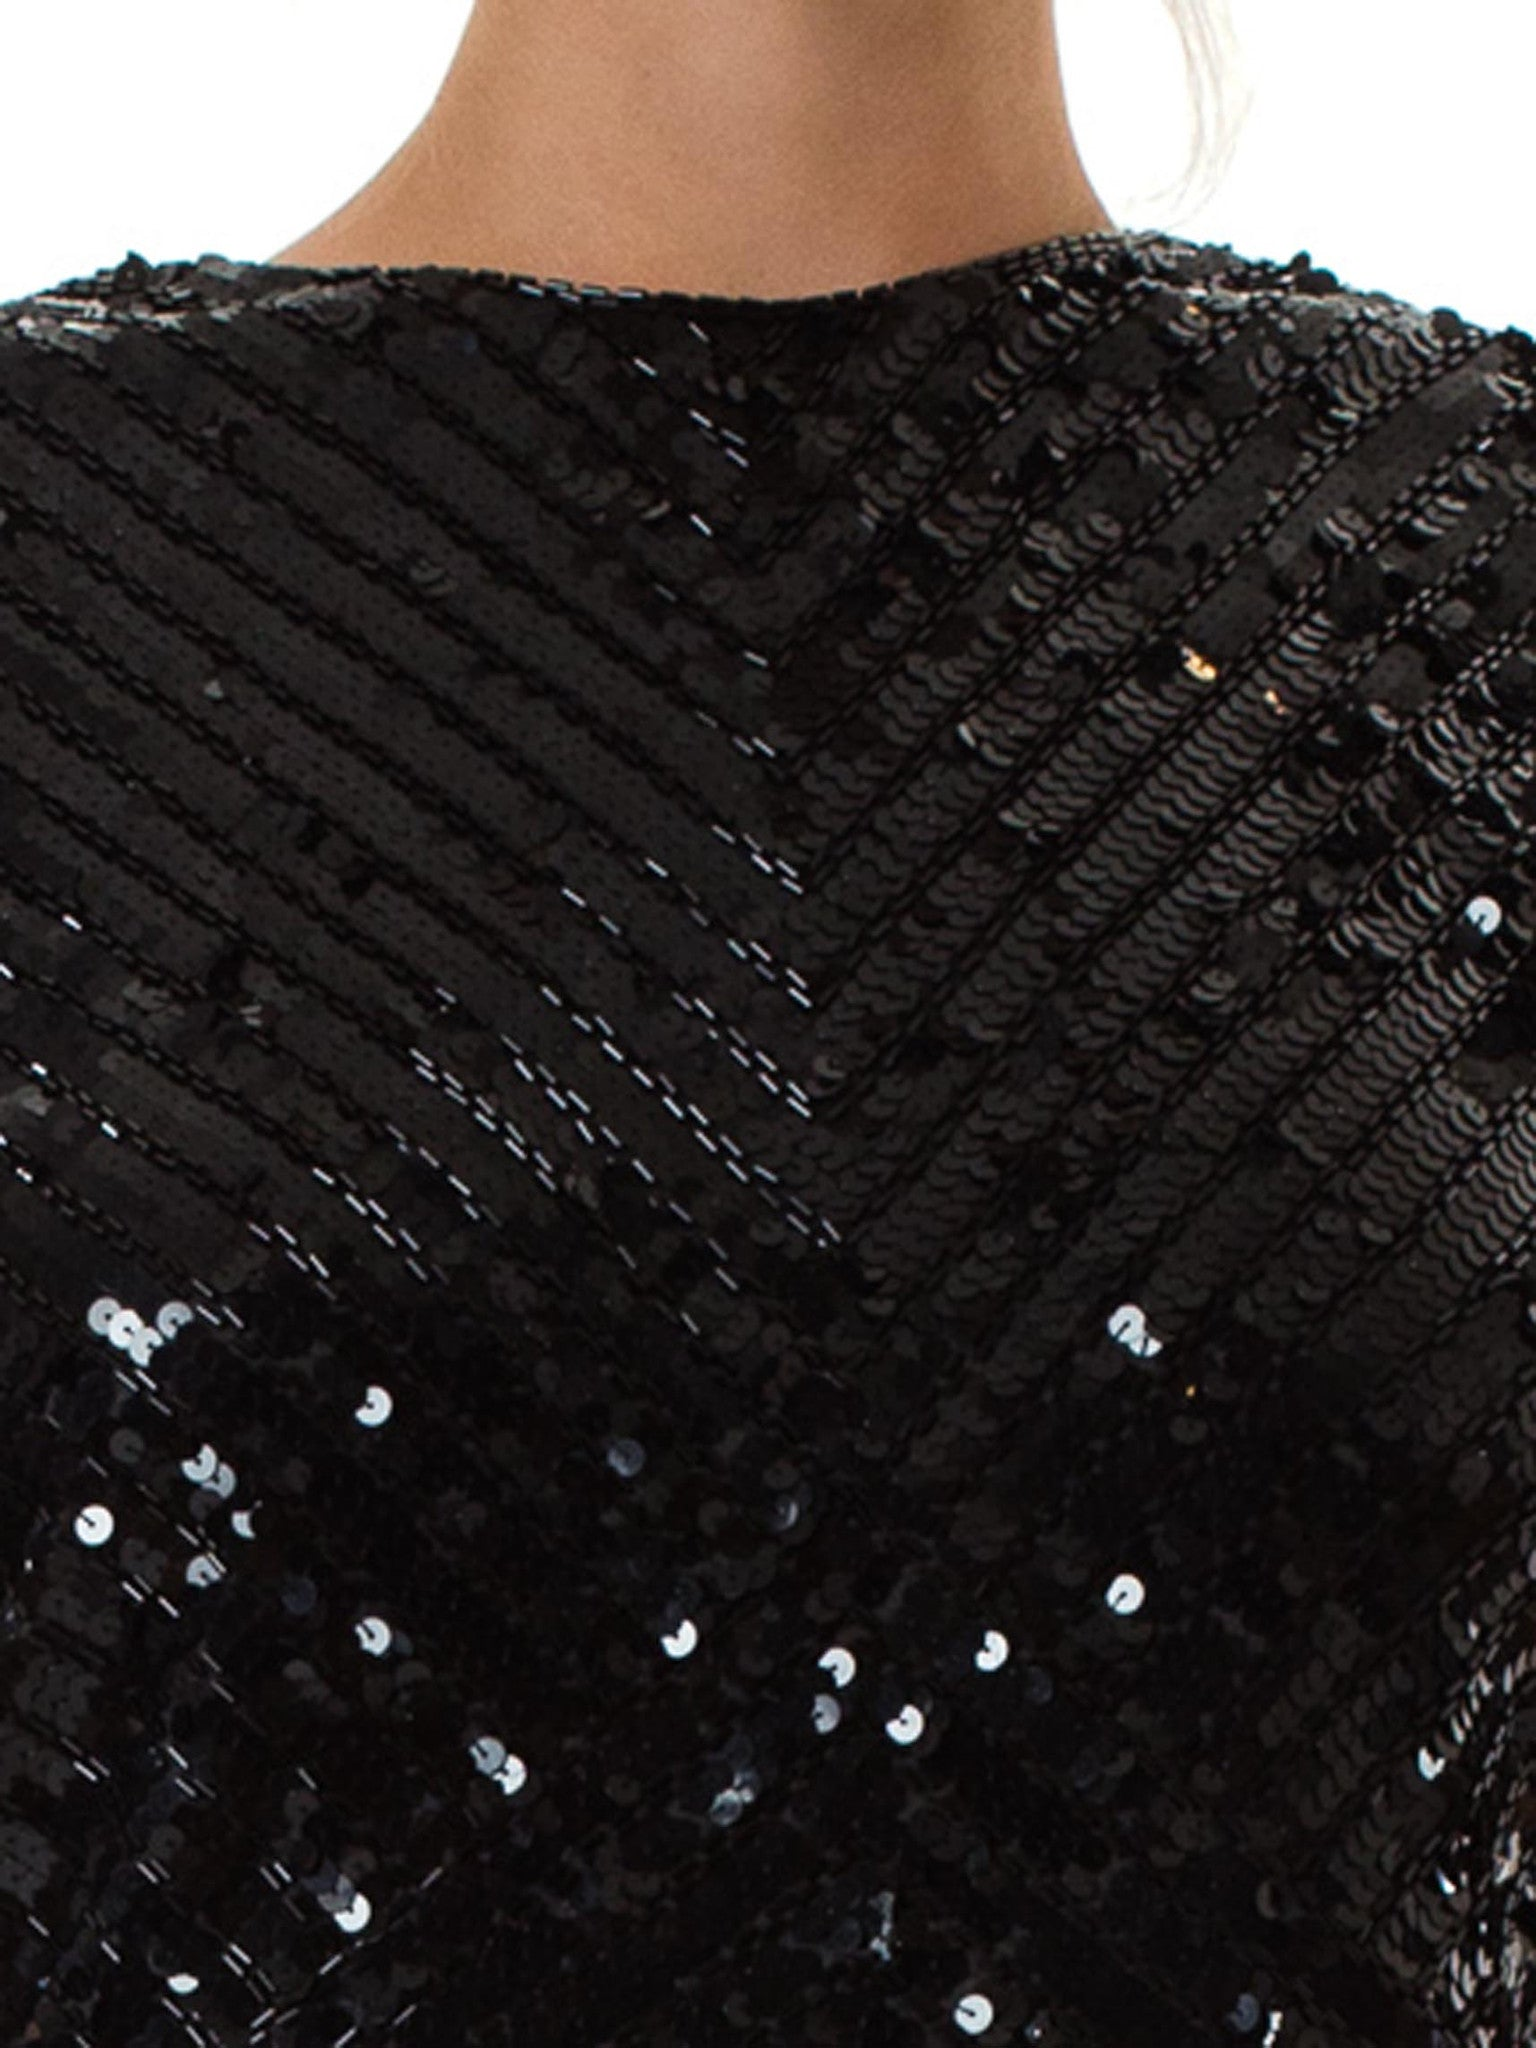 1980S Bead Encrusted Black Body-Con Cocktail Dress